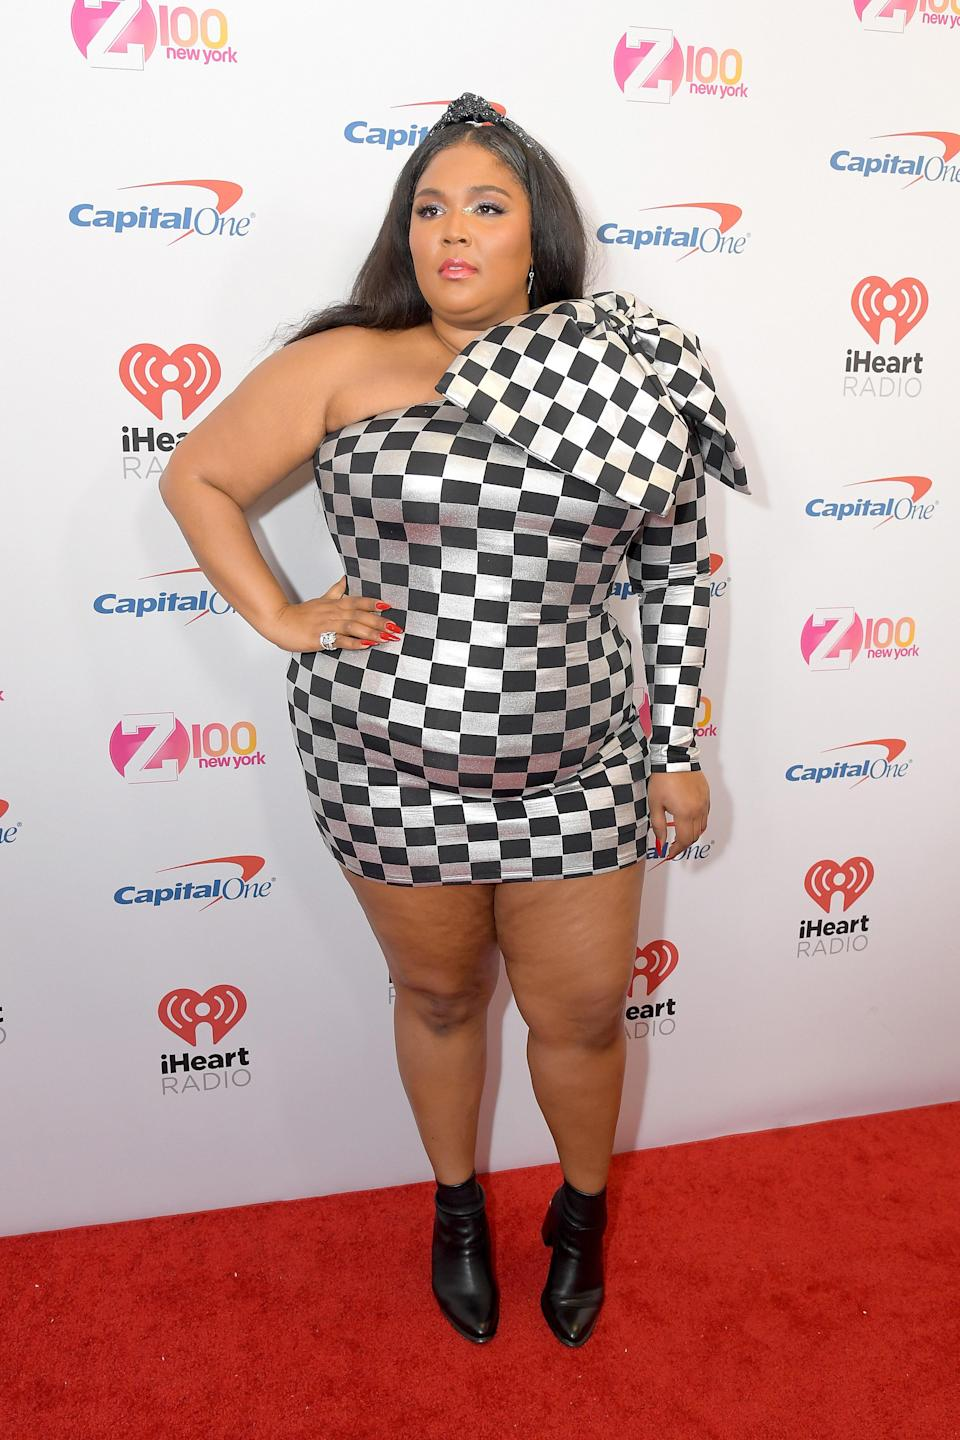 Lizzo's bow-topped black and silver checked dress, which she paired with a crystal-embellished headband, was <em>oh-so</em>-jolly.